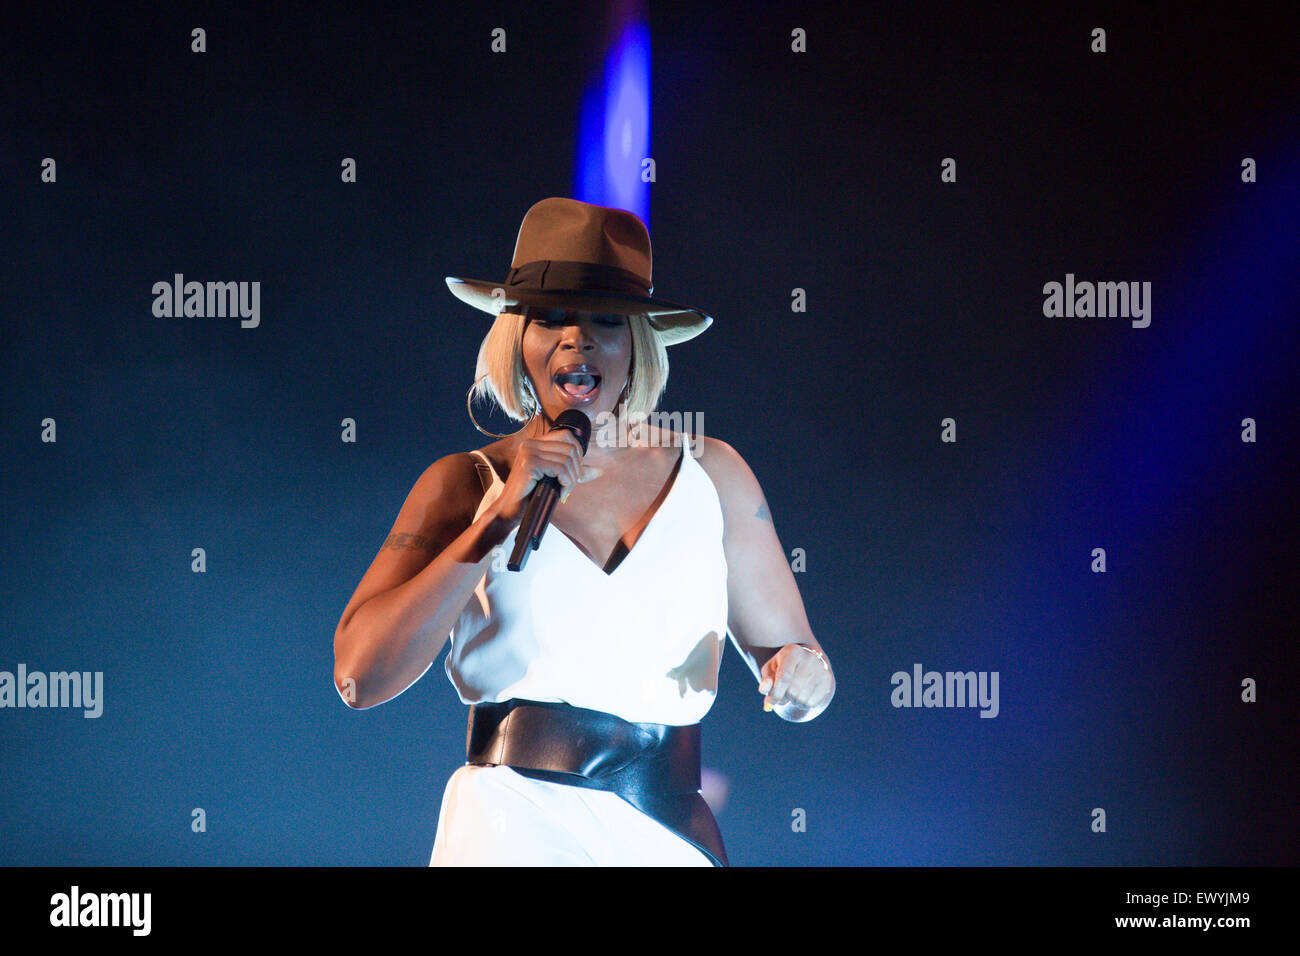 02 Apollo, Manchester, UK,  2, July, 2015. Mary J Blige performs live on stage in Manchester UK on the opening night - Stock Image